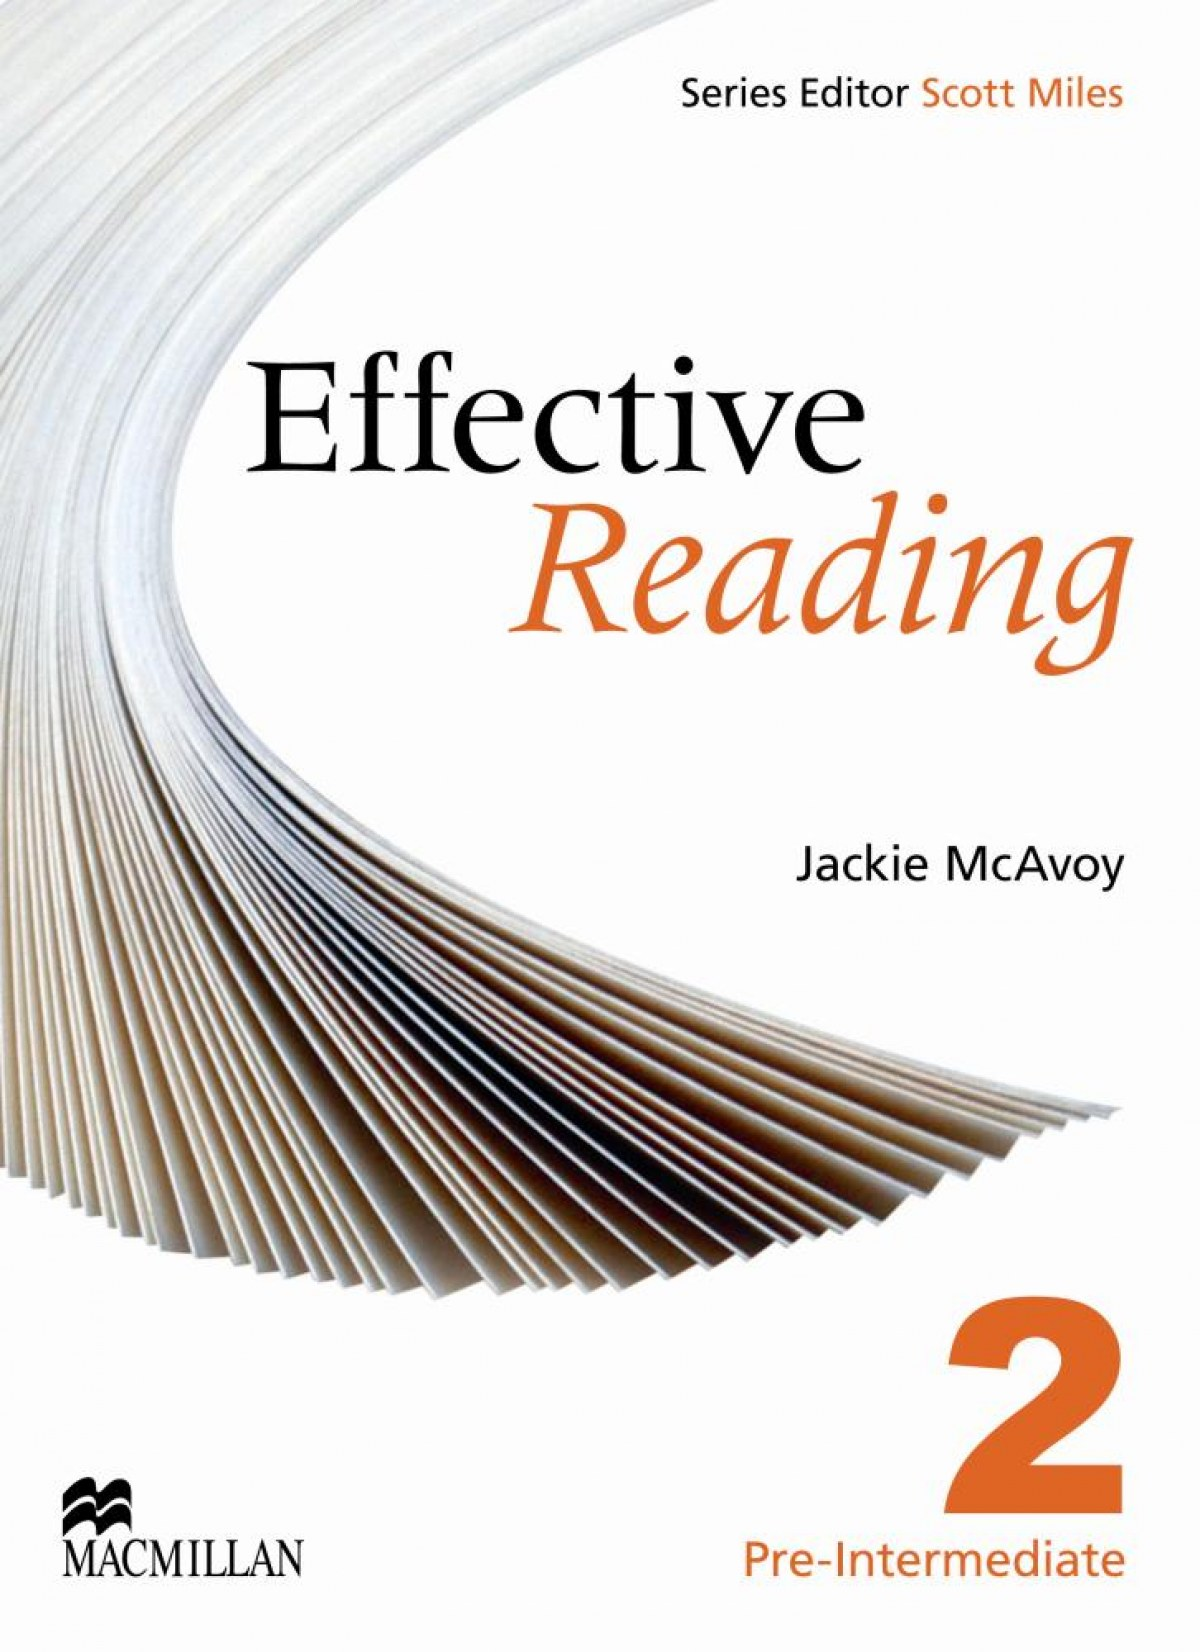 (18).EFFECTIVE READING 2 PRE-INTERMEDIATE STUDENT'S